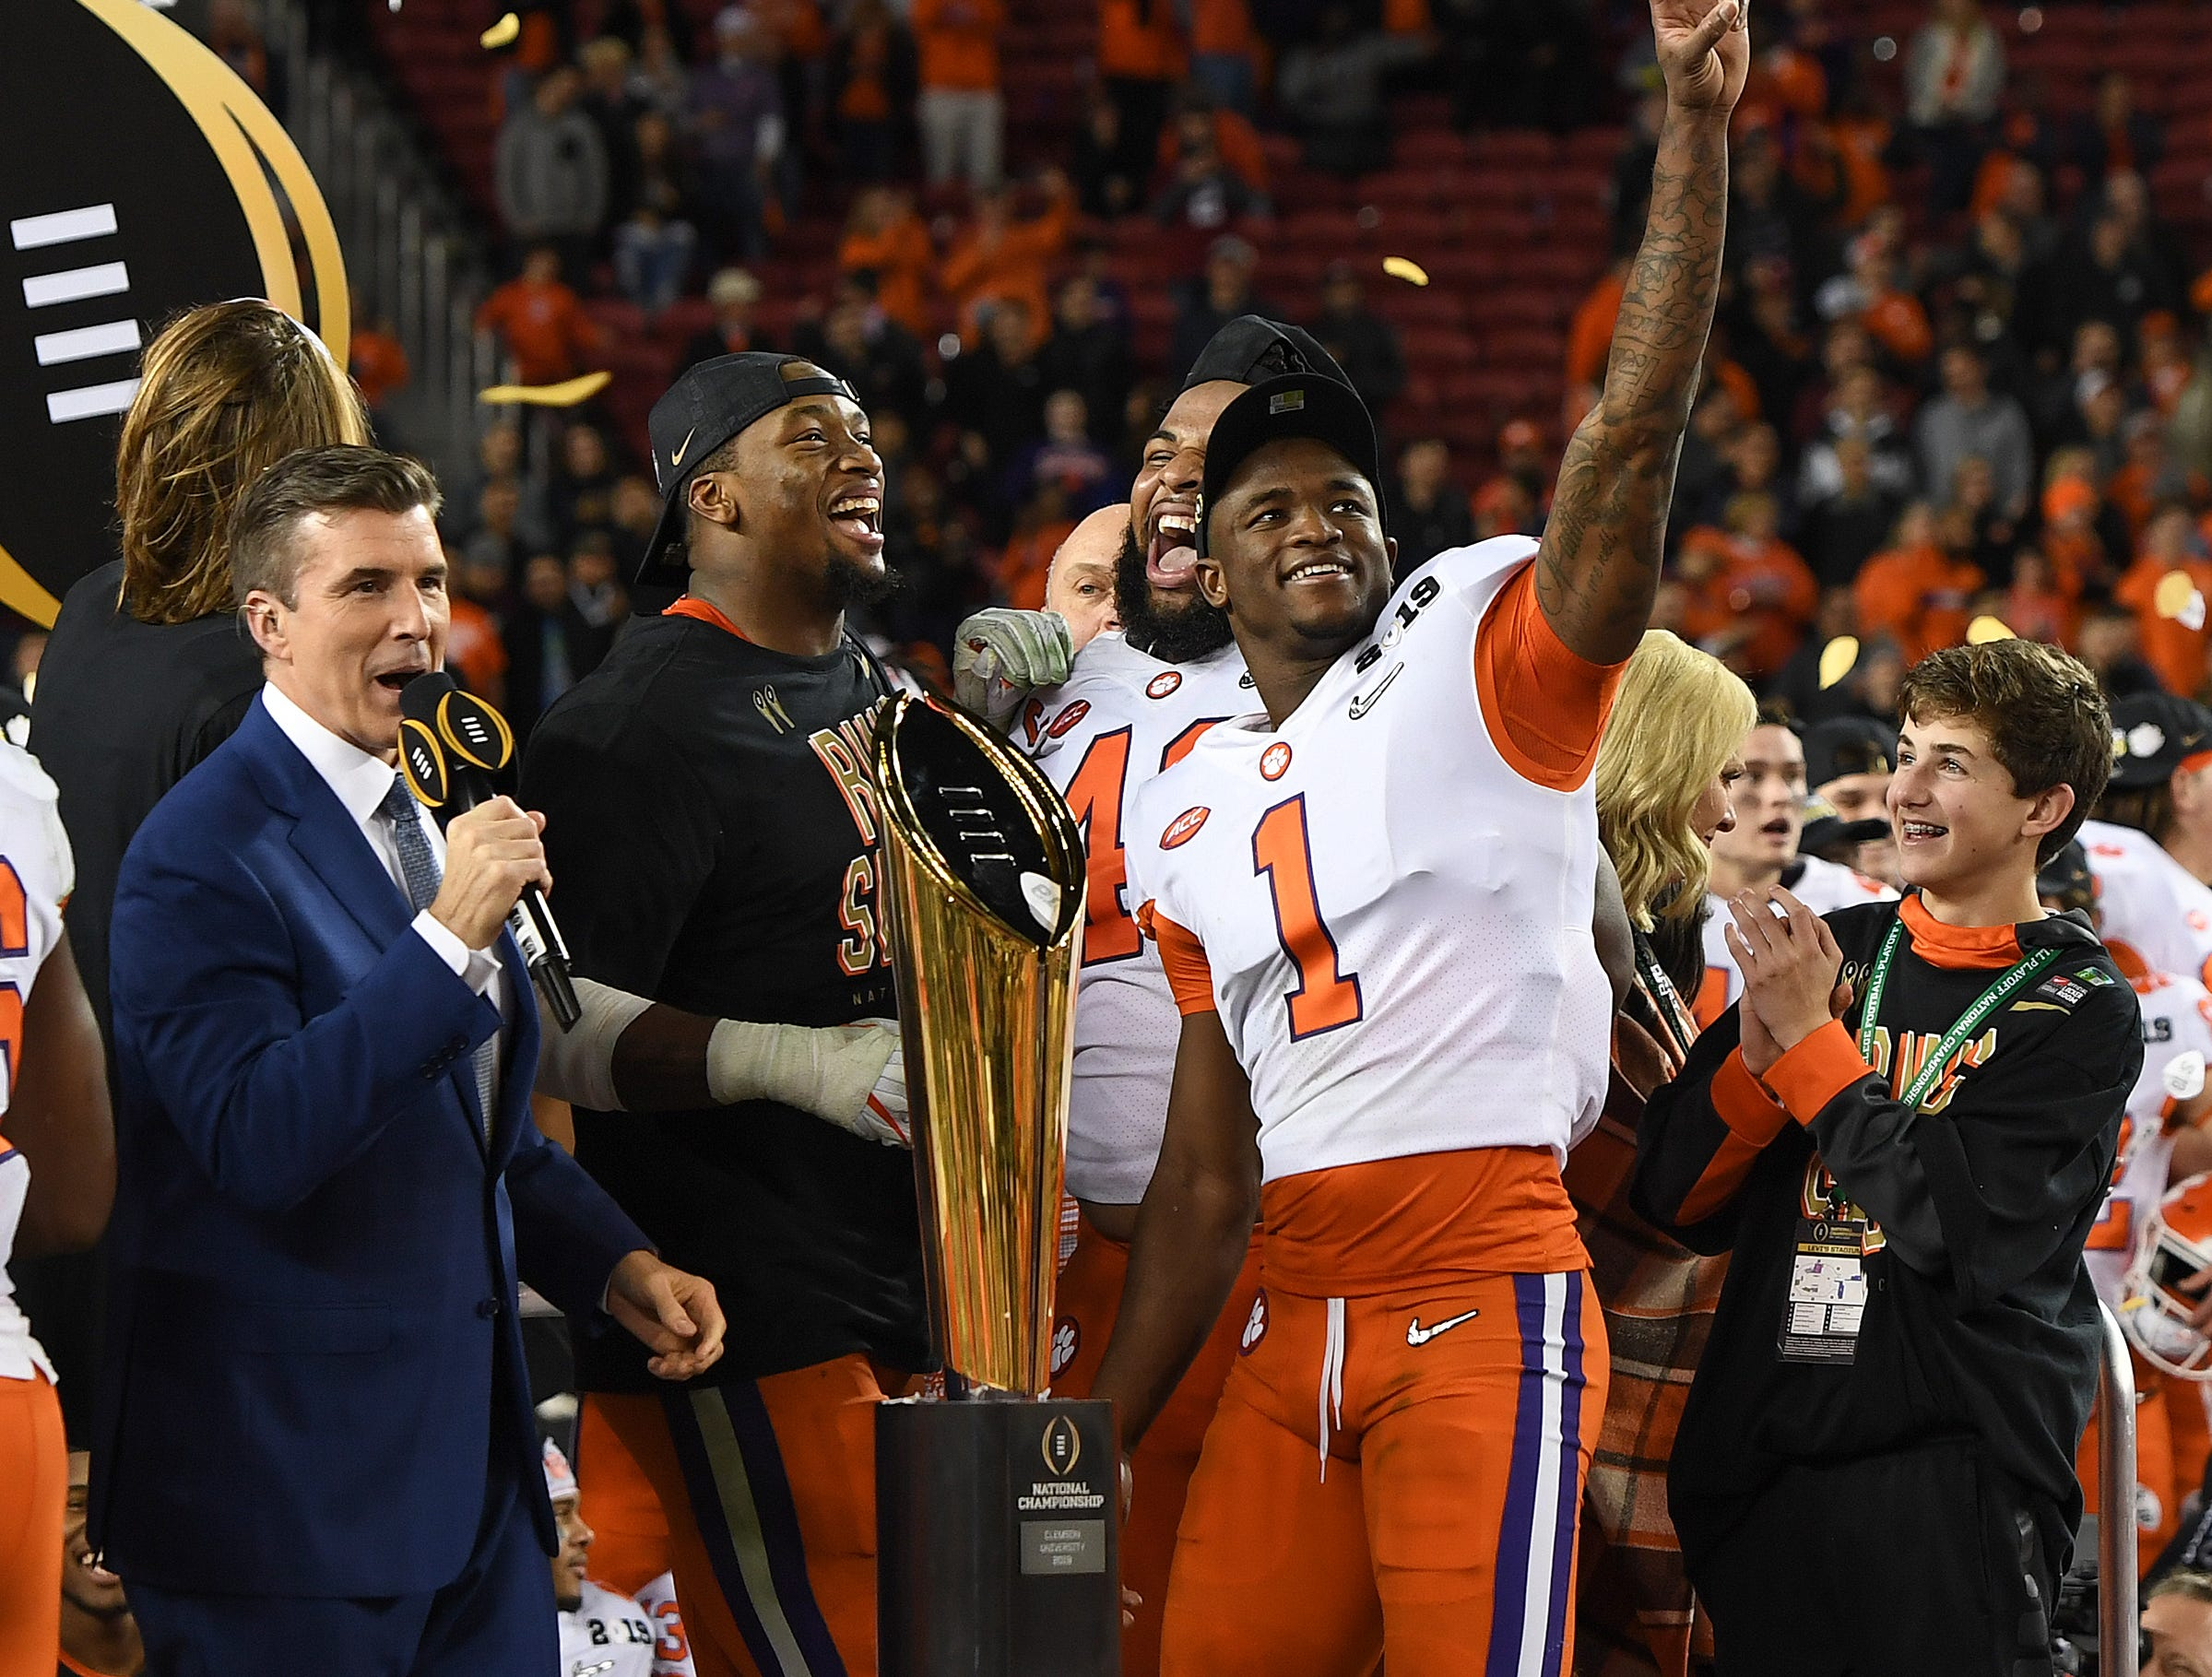 Clemson defensive lineman Christian Wilkins (42), defensive lineman Clelin Ferrell (99), and cornerback Trayvon Mullen (1) celebrate their 44-16 win over Alabama in the College Football National Championship at Levi's Stadium in Santa Clara, CA Monday, January 7, 2019.